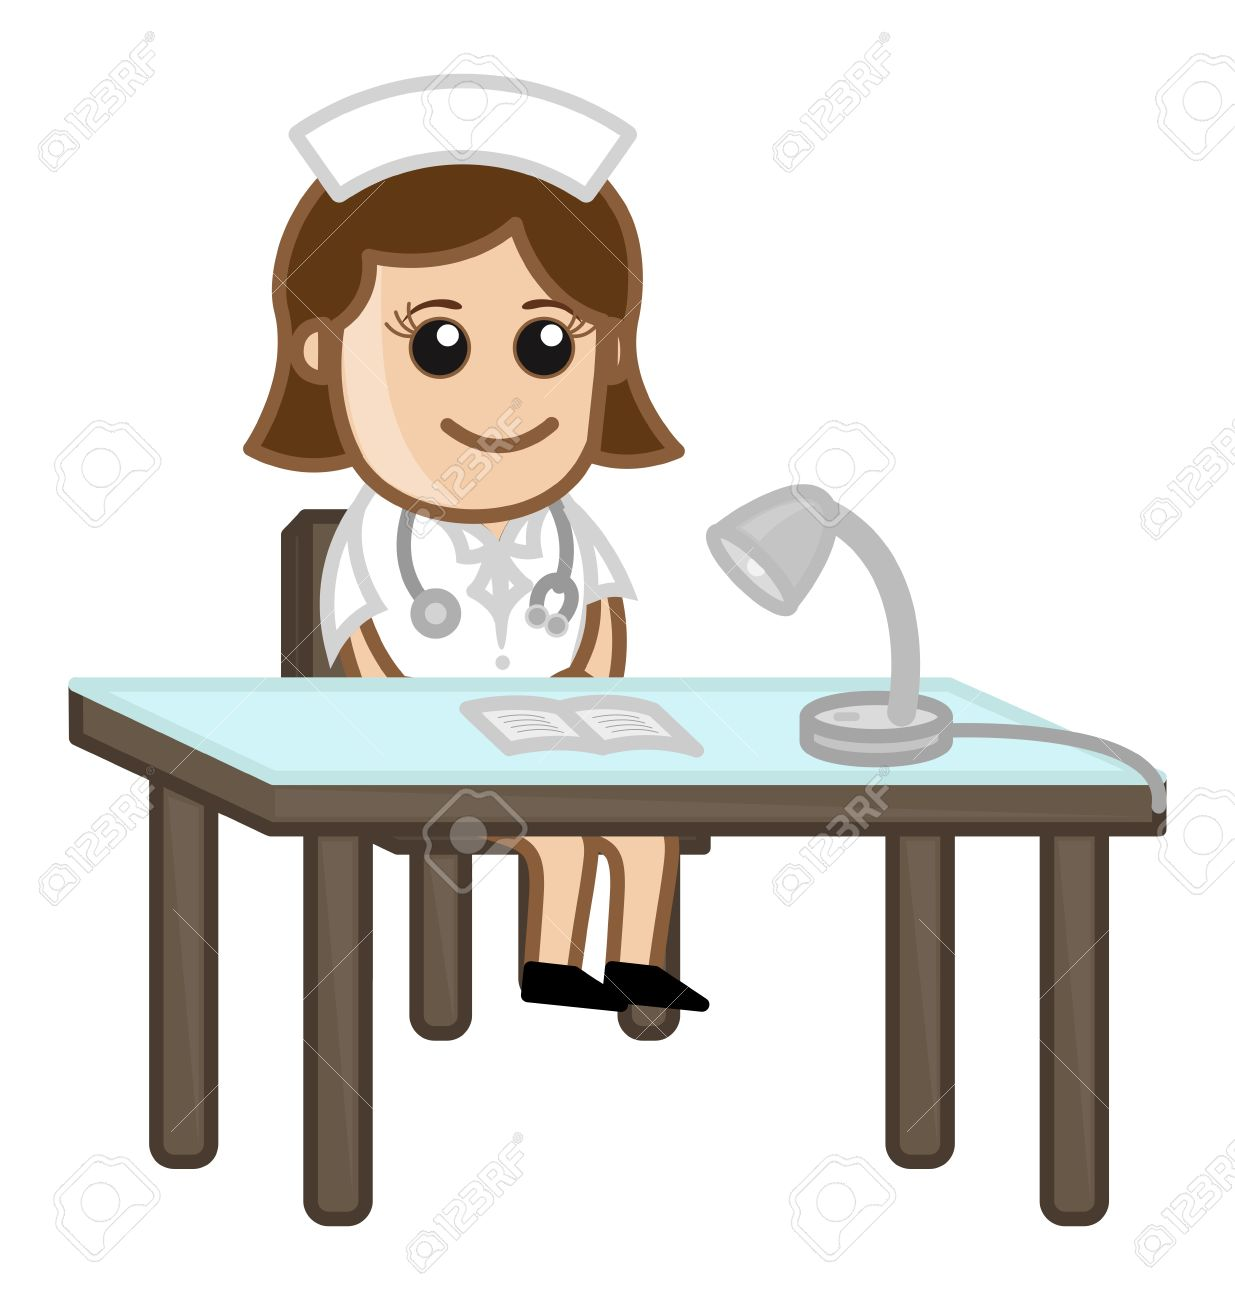 Doctor receptionist clipart.